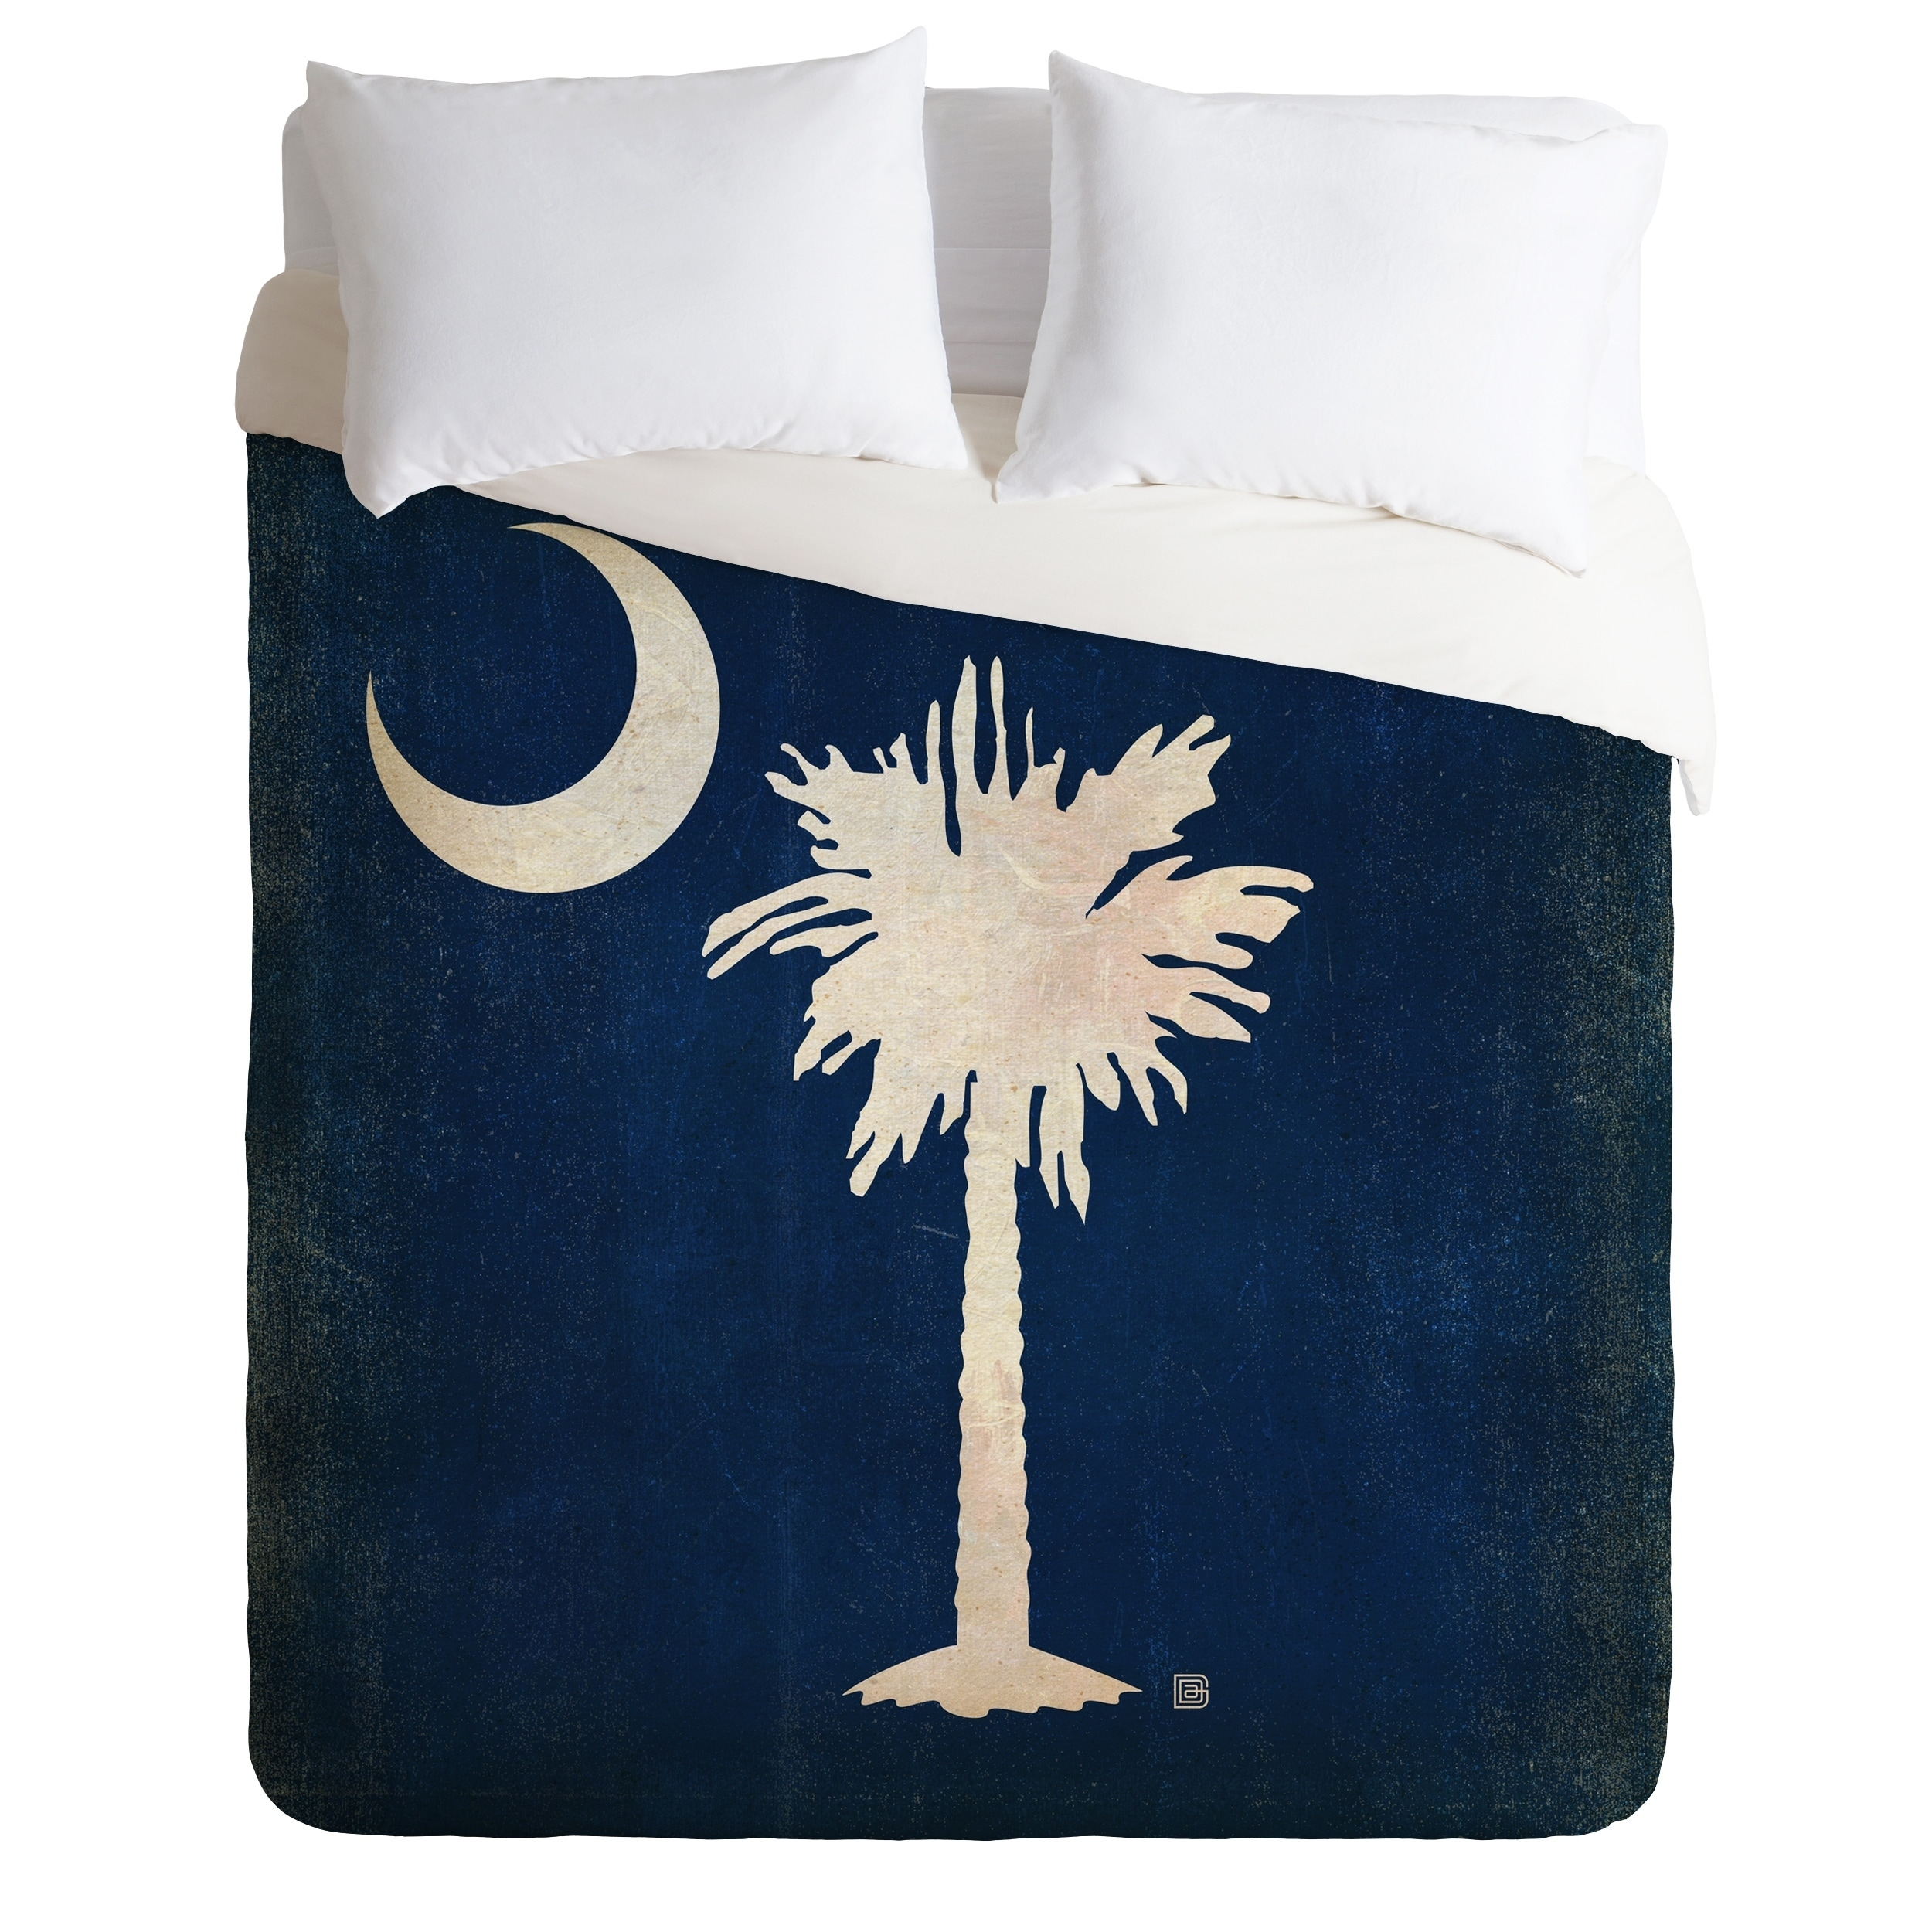 Rustic South Carolina State Flag Duvet Cover Twin Xl On Sale Overstock 24258011